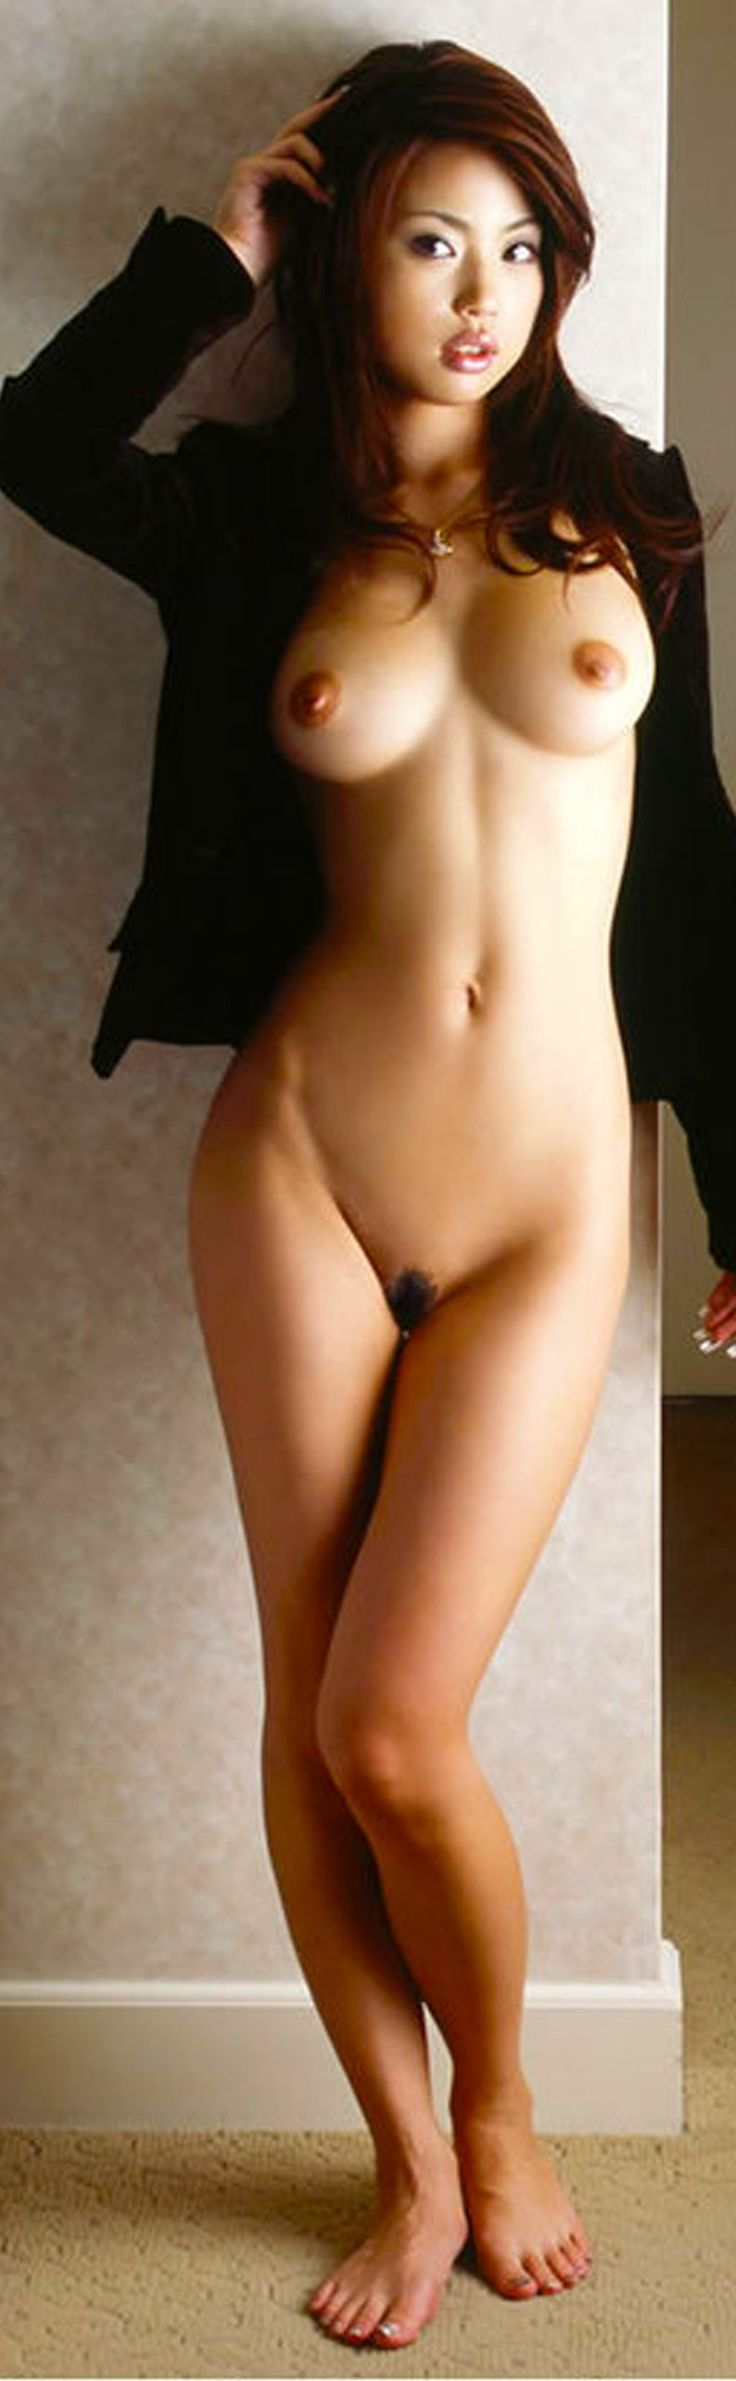 Tall asian nude women